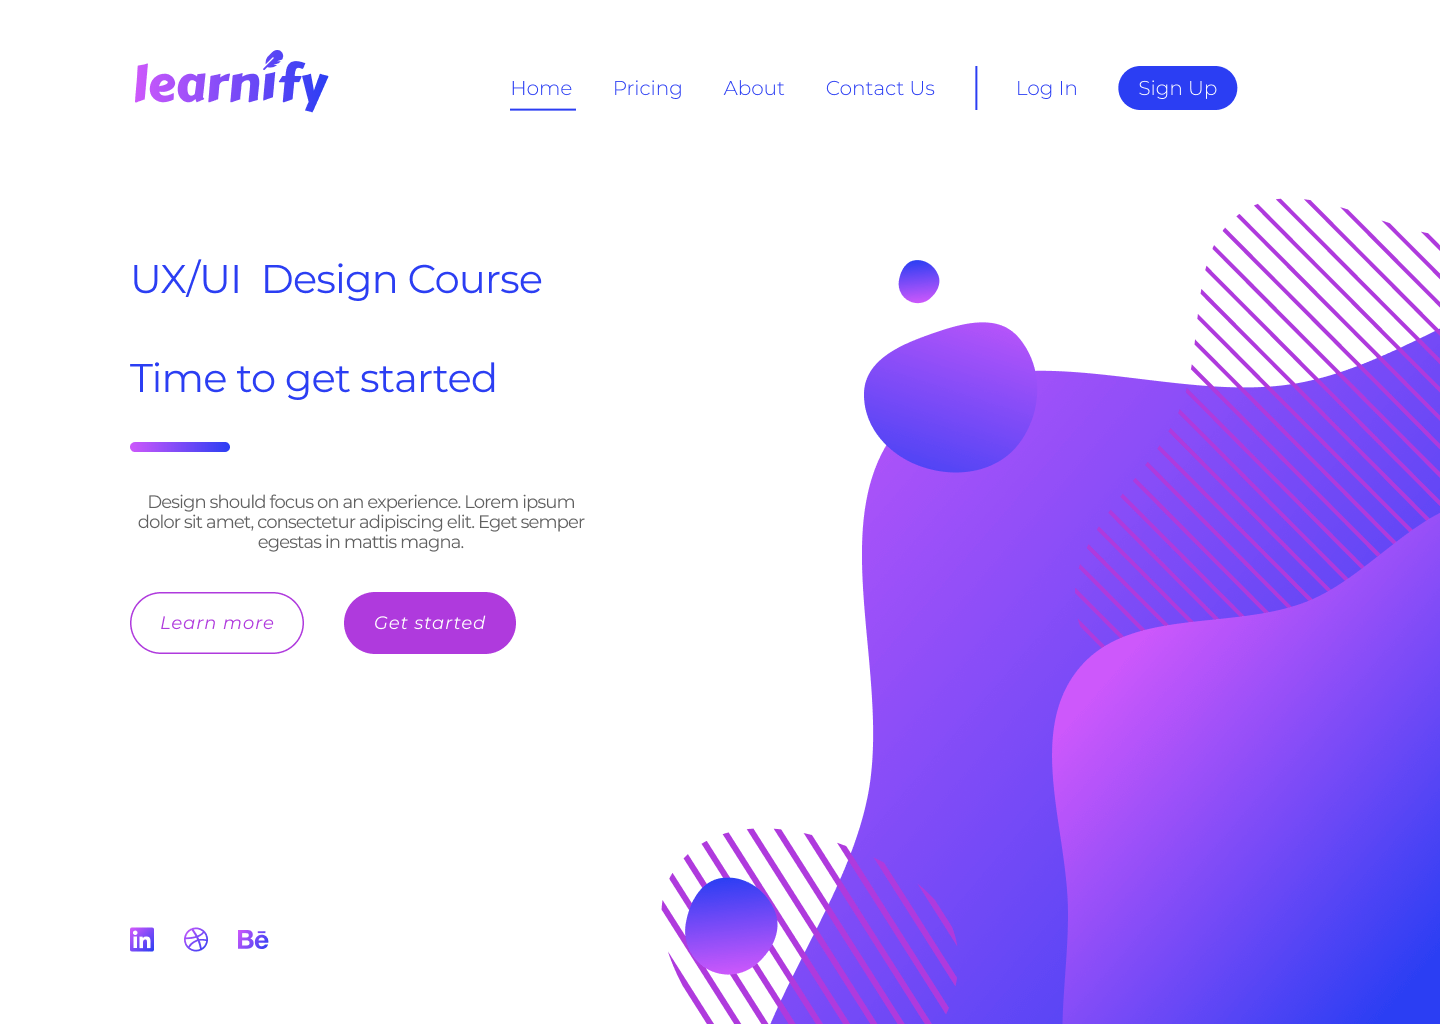 A website page for a fictional company called 'Learnify'. The text on the page is cluttered and there is no clear sense of flow when reading the material.